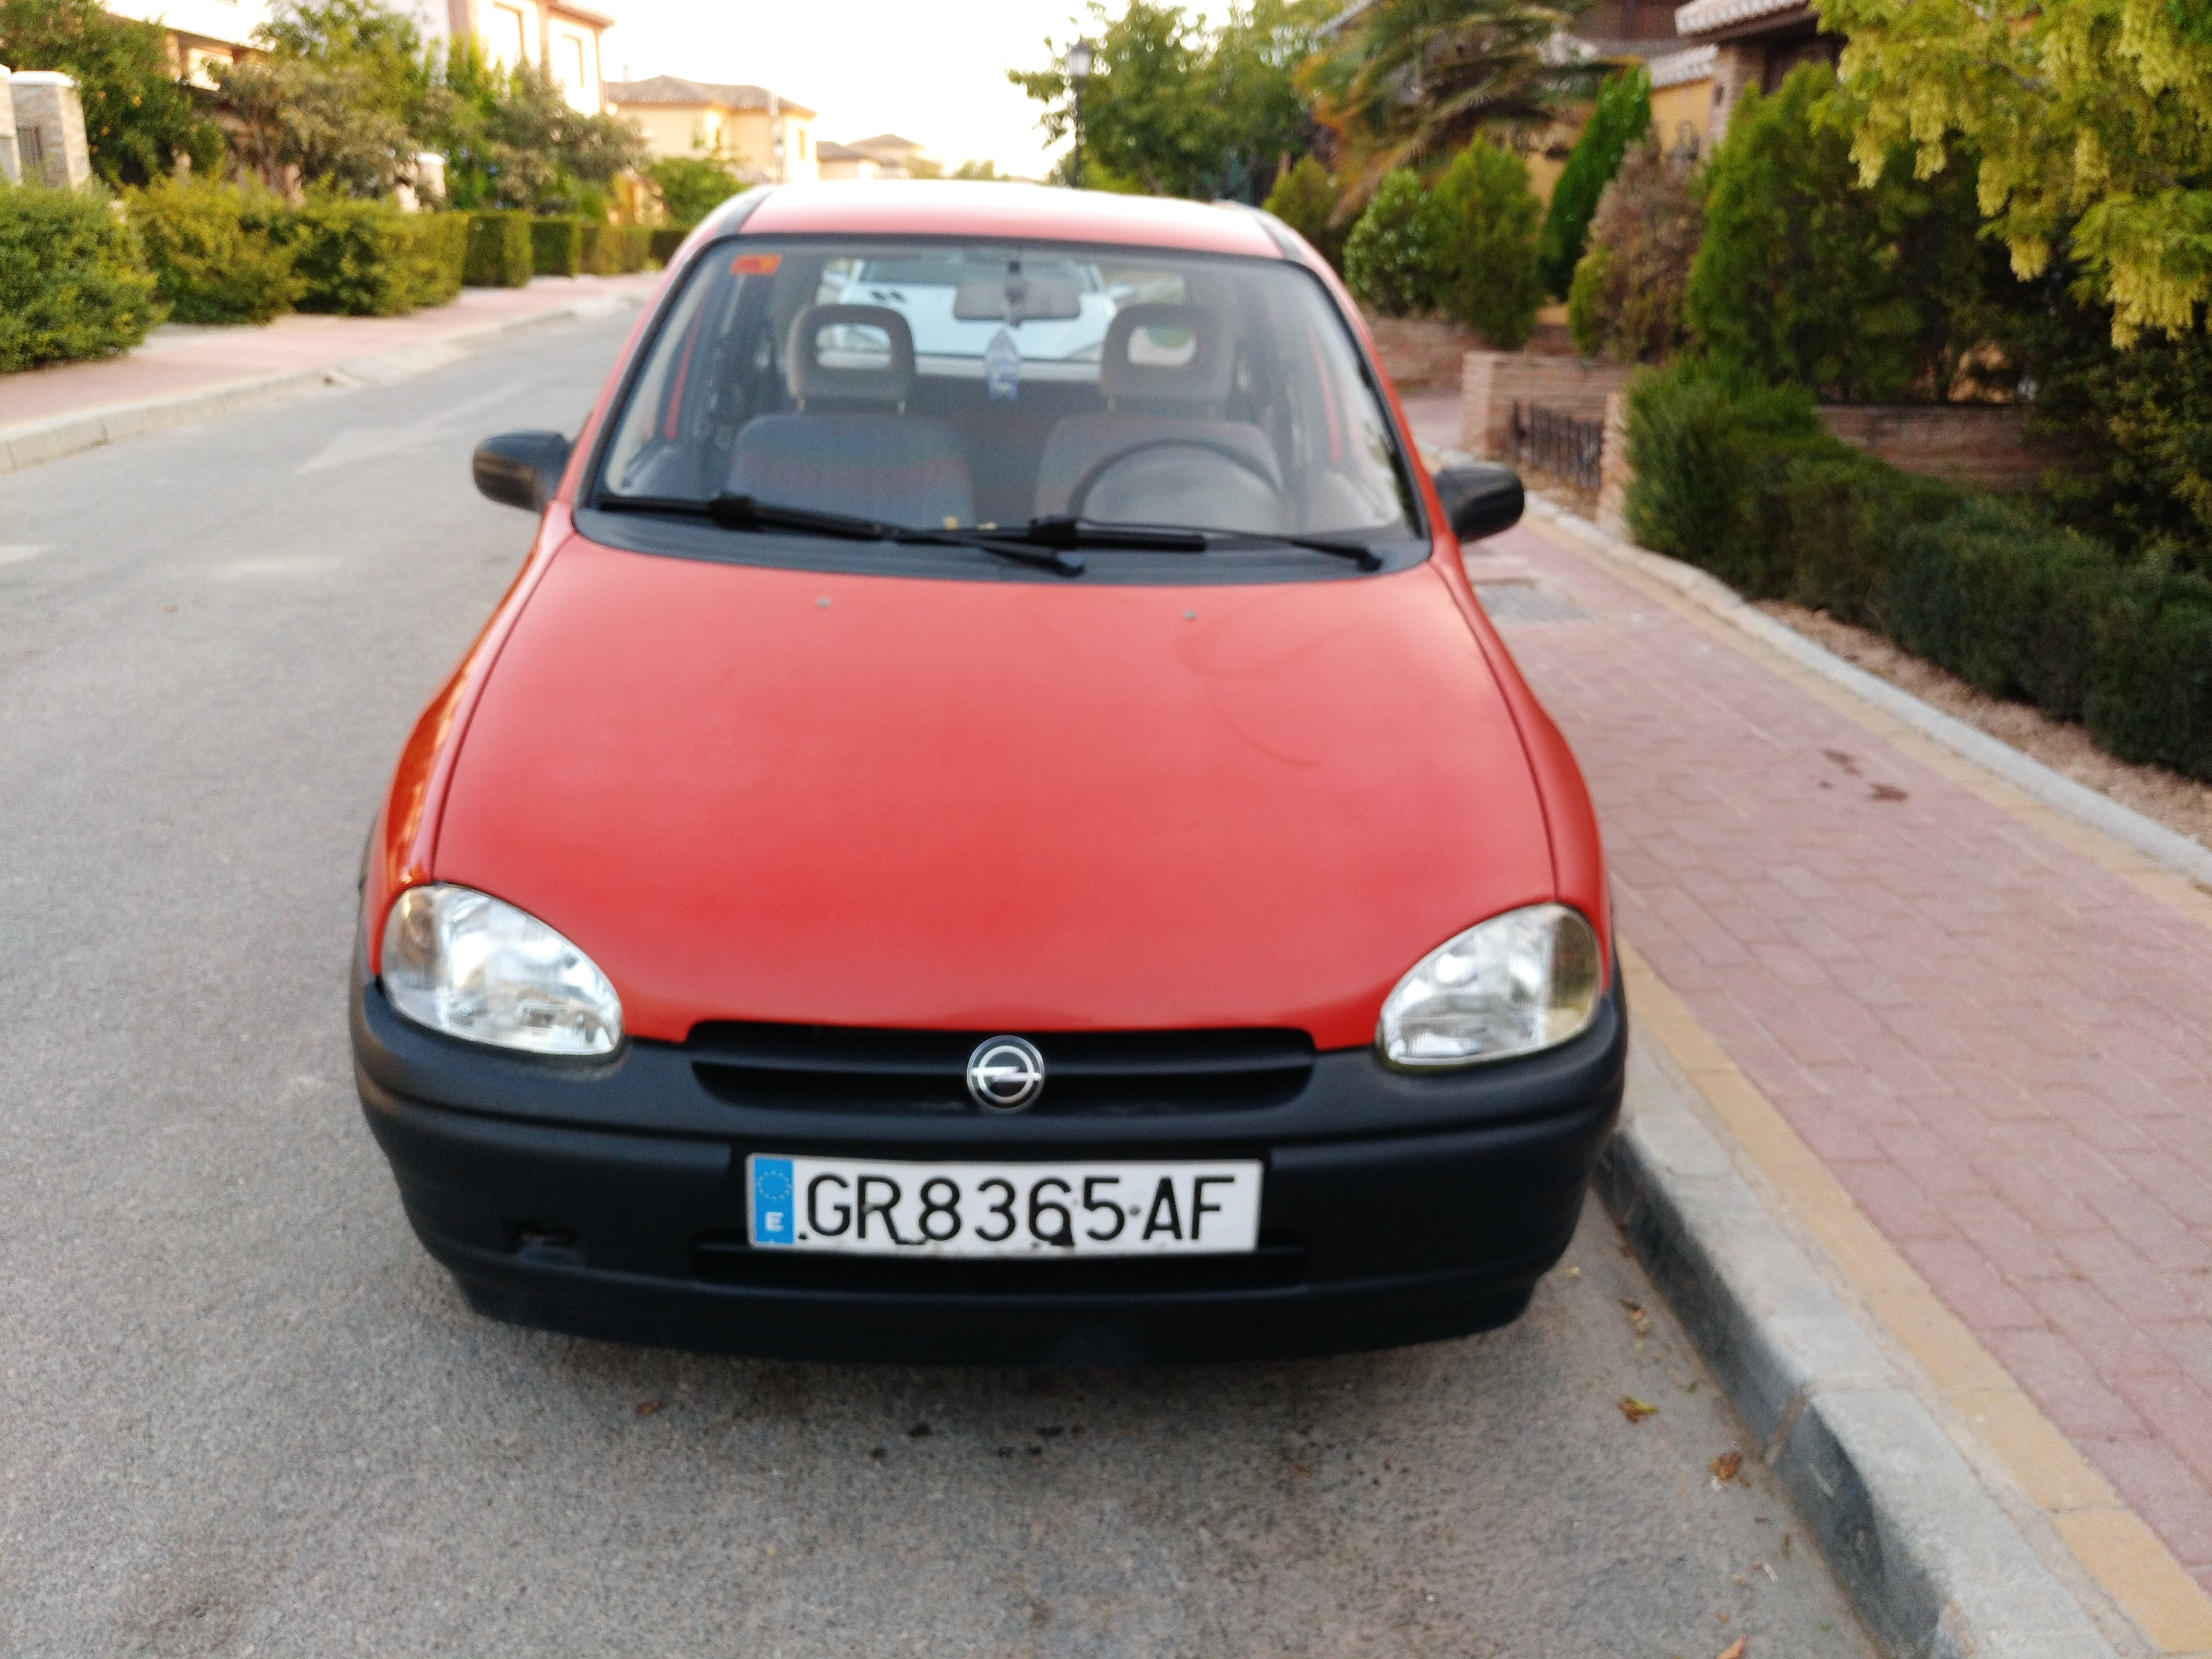 Opel Corsa City 1.2 con Reproductor de CD